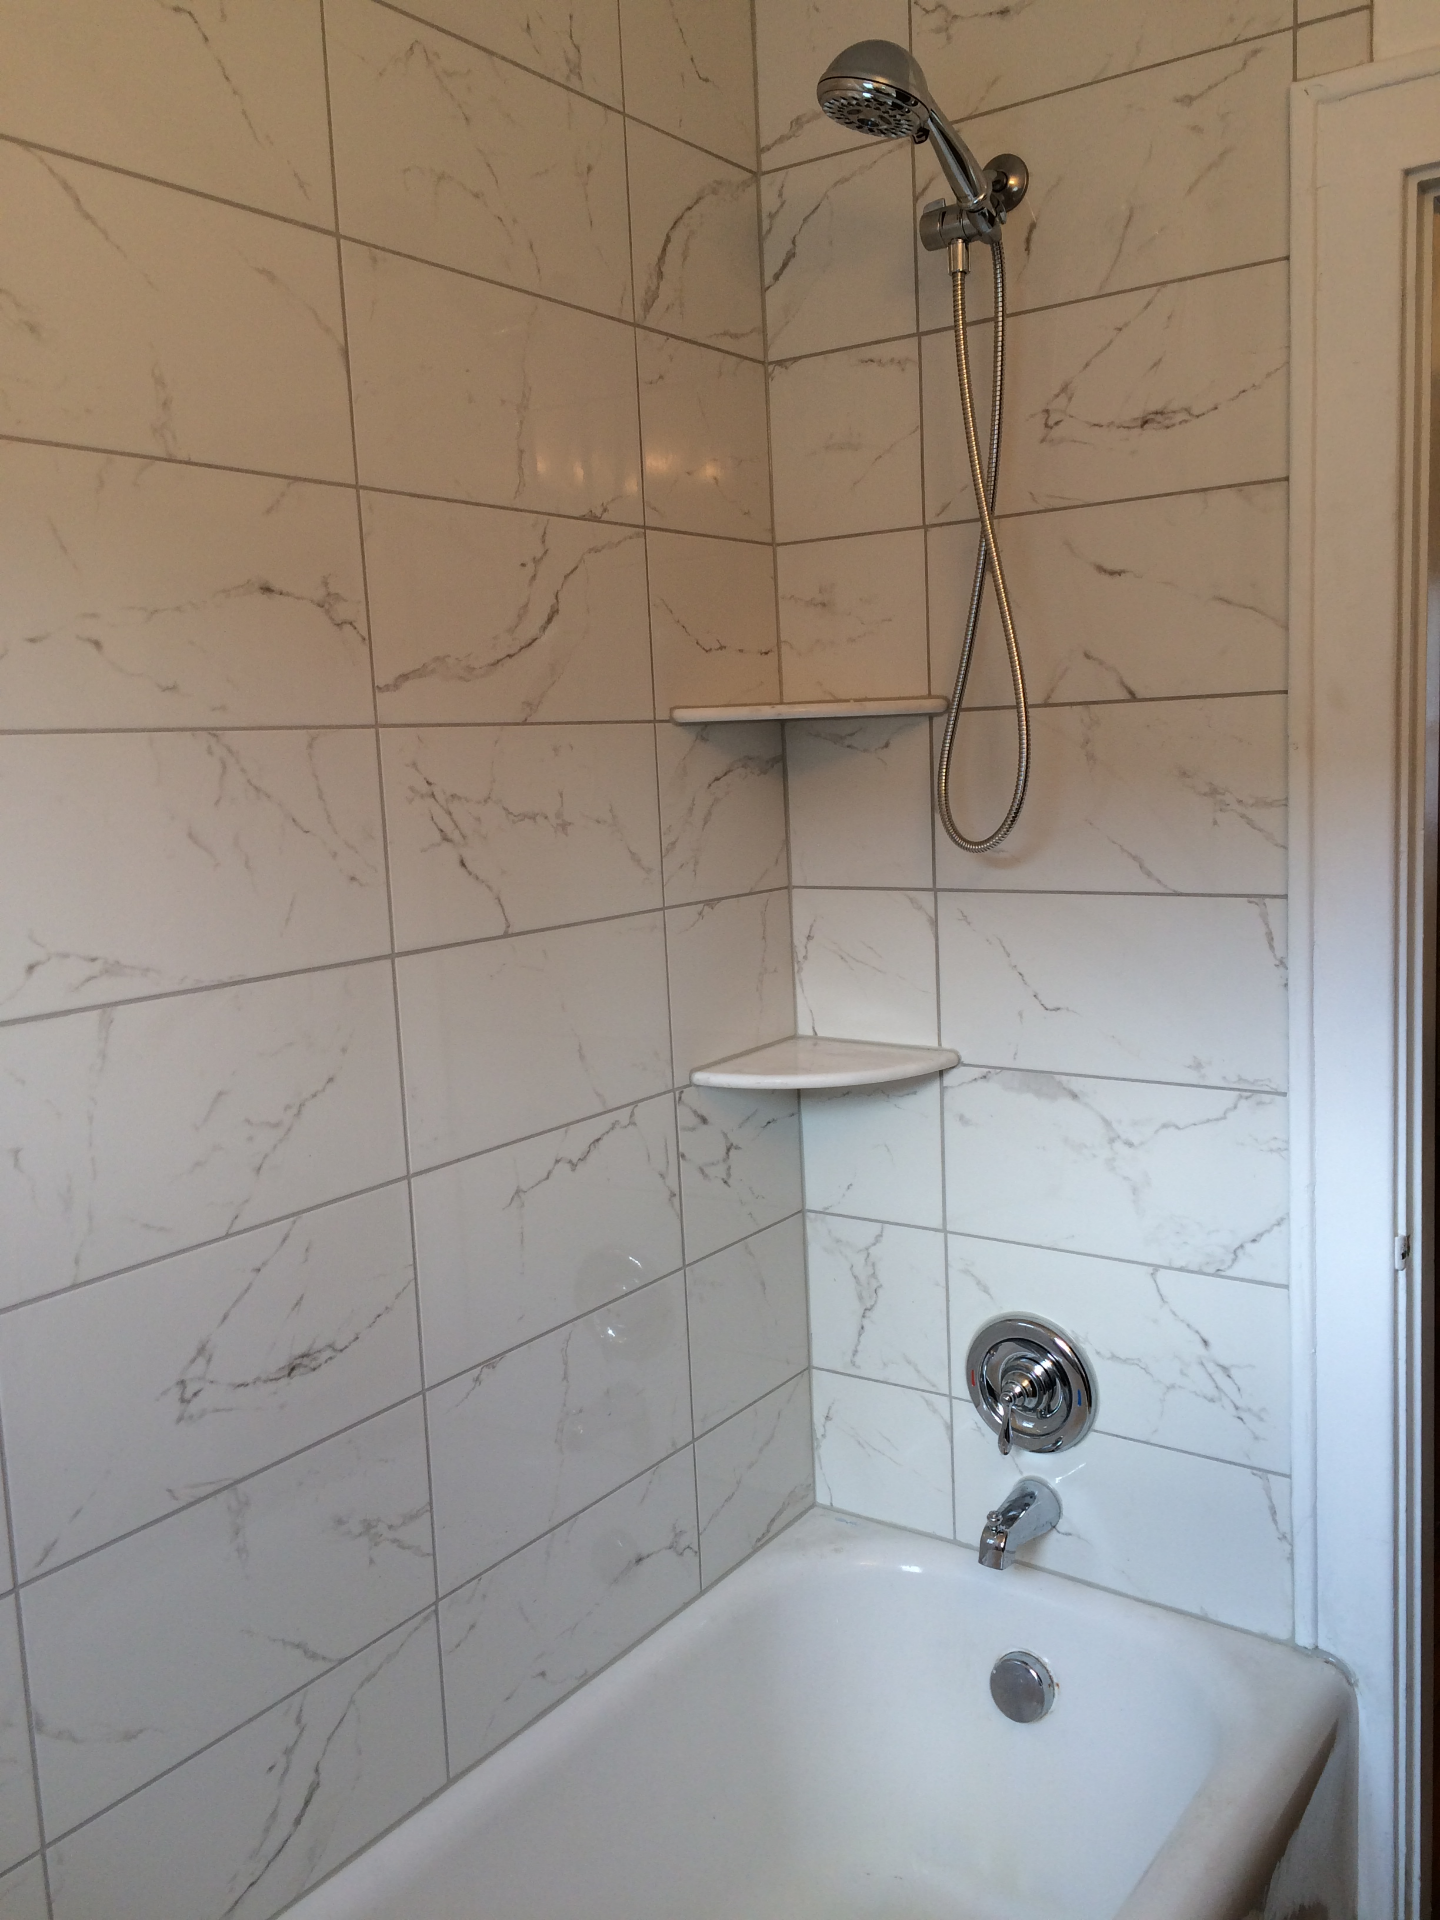 New Shower Tile and Fixtures